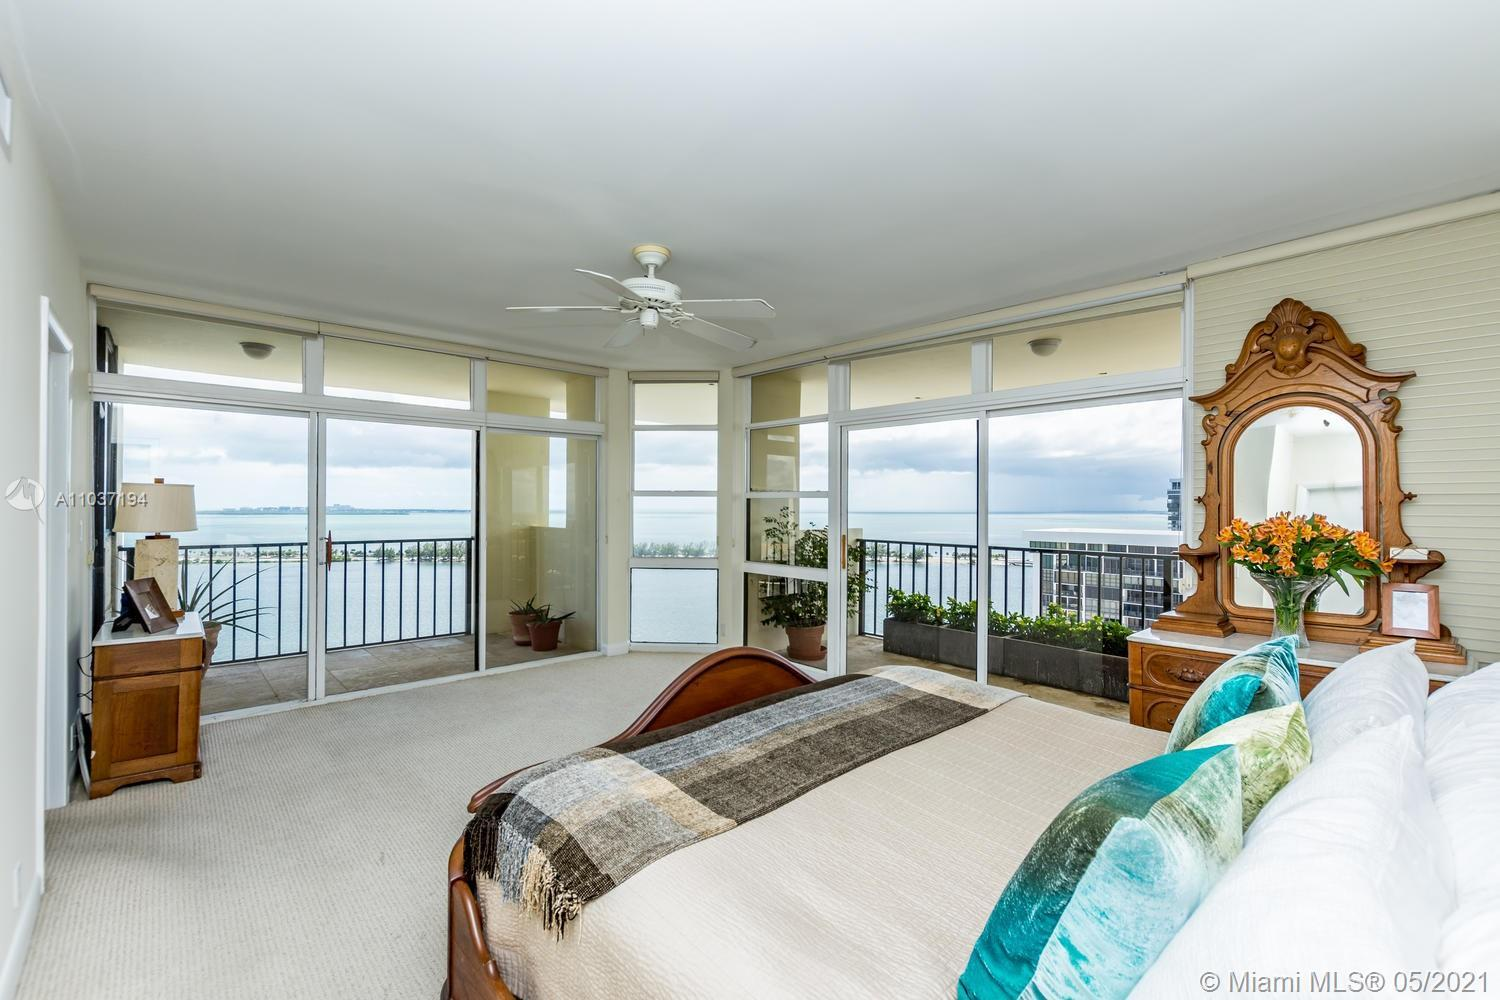 Breathtaking 360 degree water views from this fabulous 2 story penthouse on the tree-lined south end